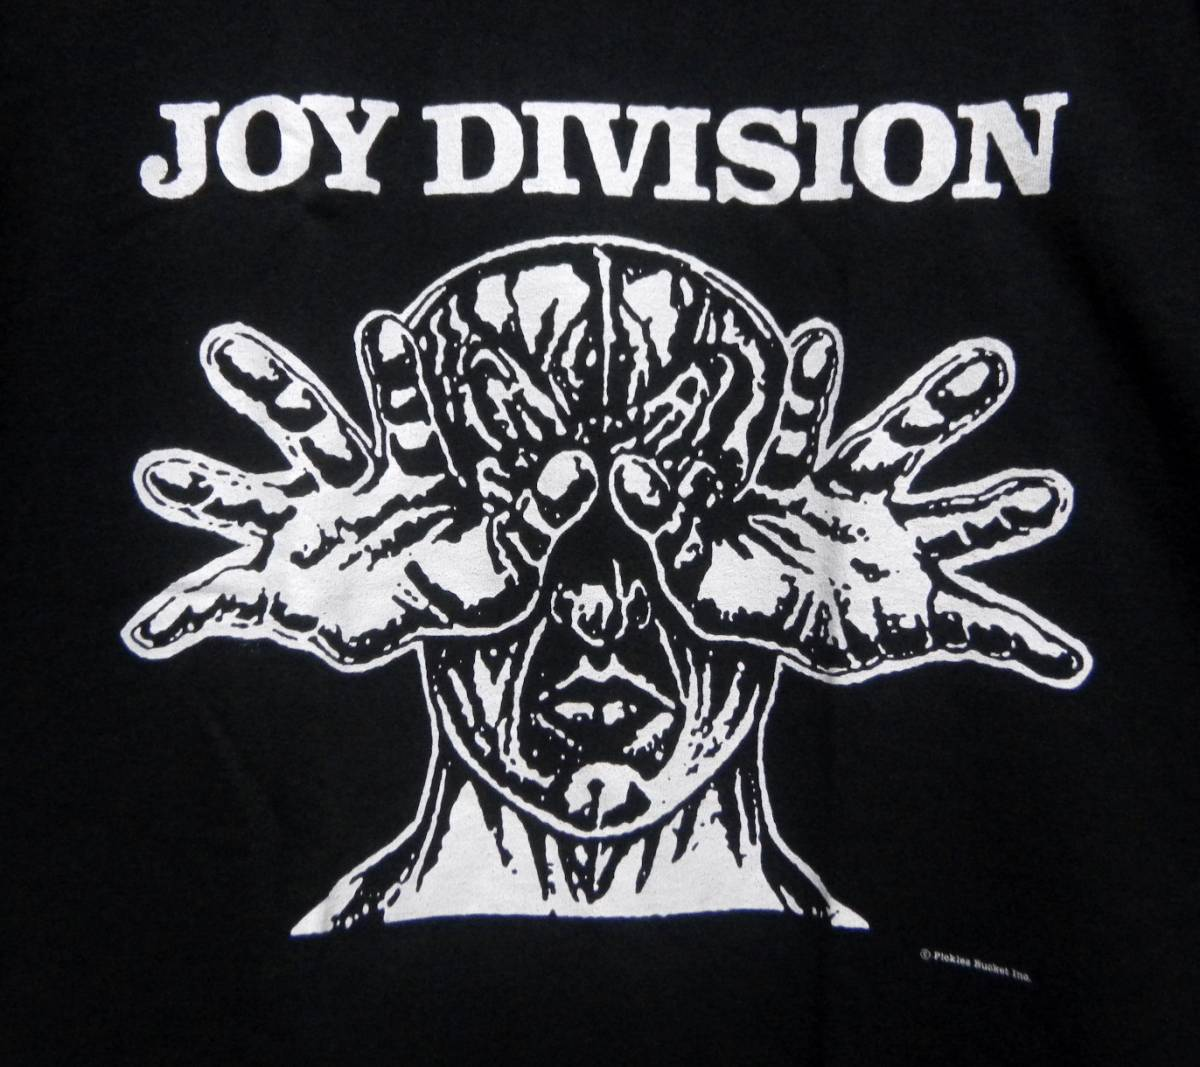 JOY DIVISION Tシャツ sonic youth radiohead bjork damned bauhaus nirvana aphex twin rapeman cocteau twins my bloody valentine dvd